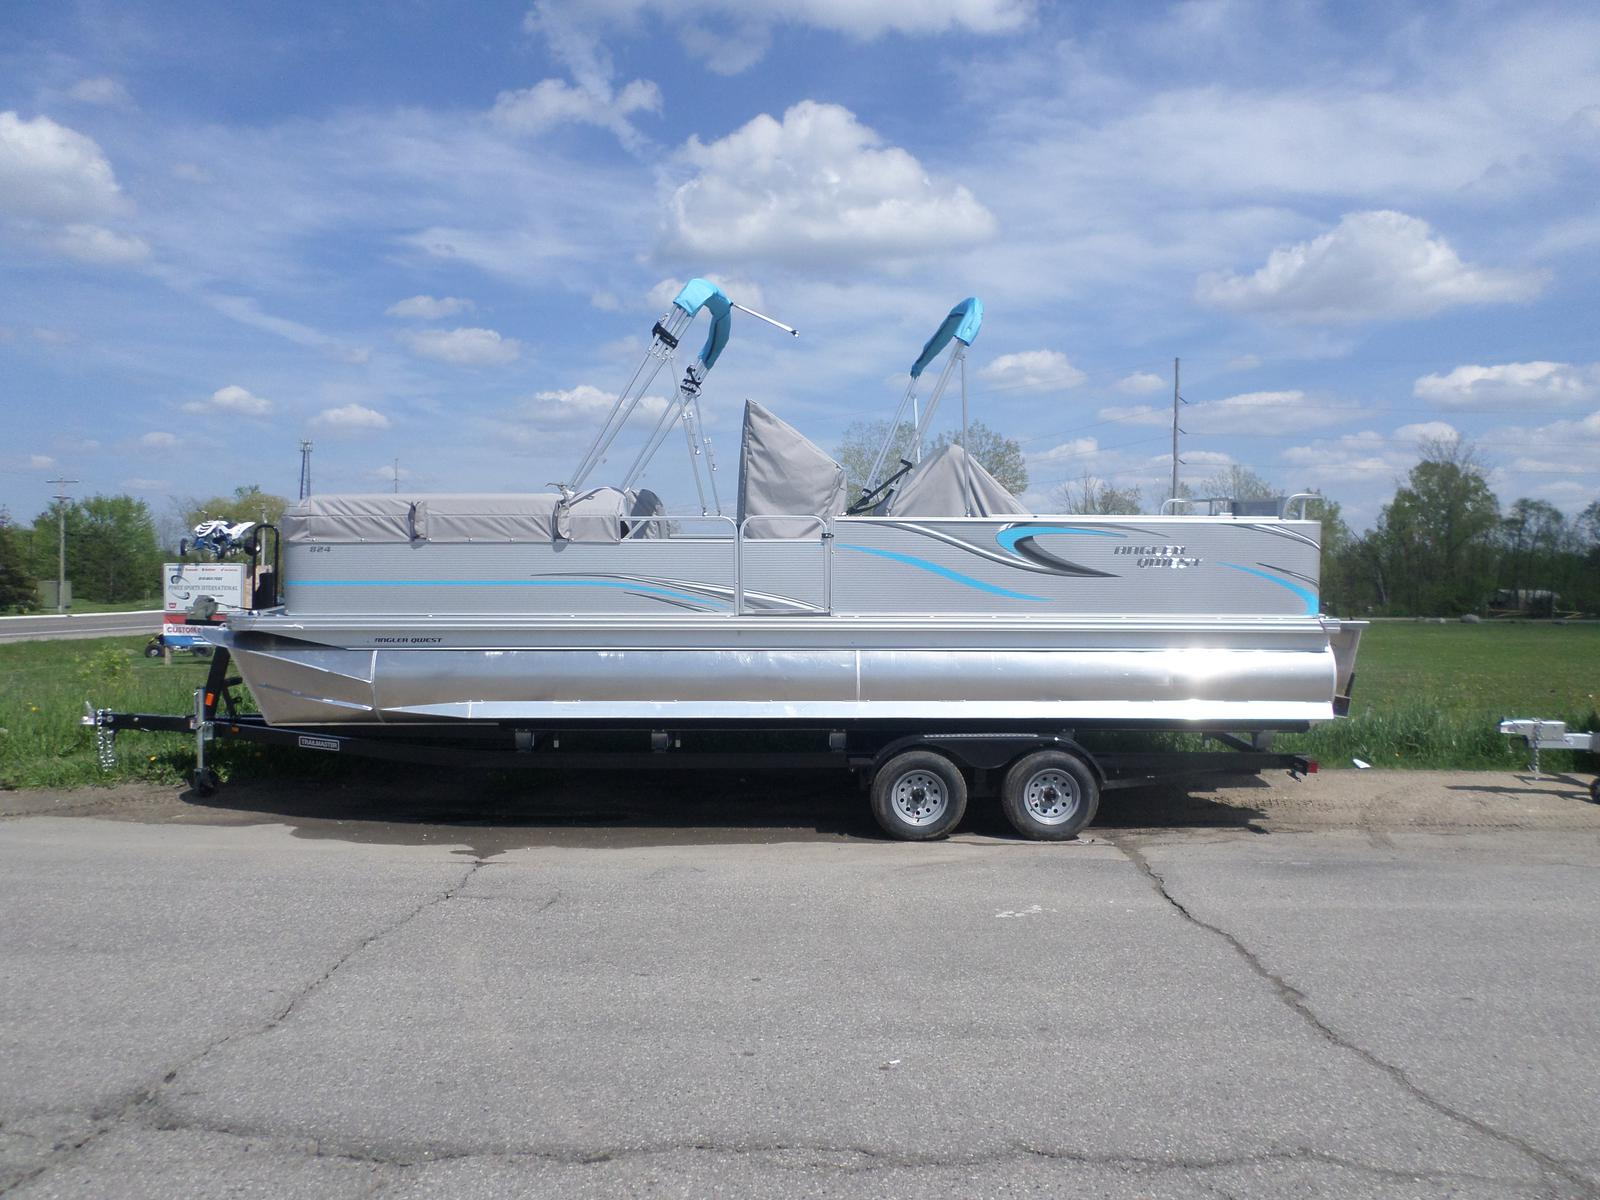 Boats for Sale | Detroit Classifieds - Recycler.com